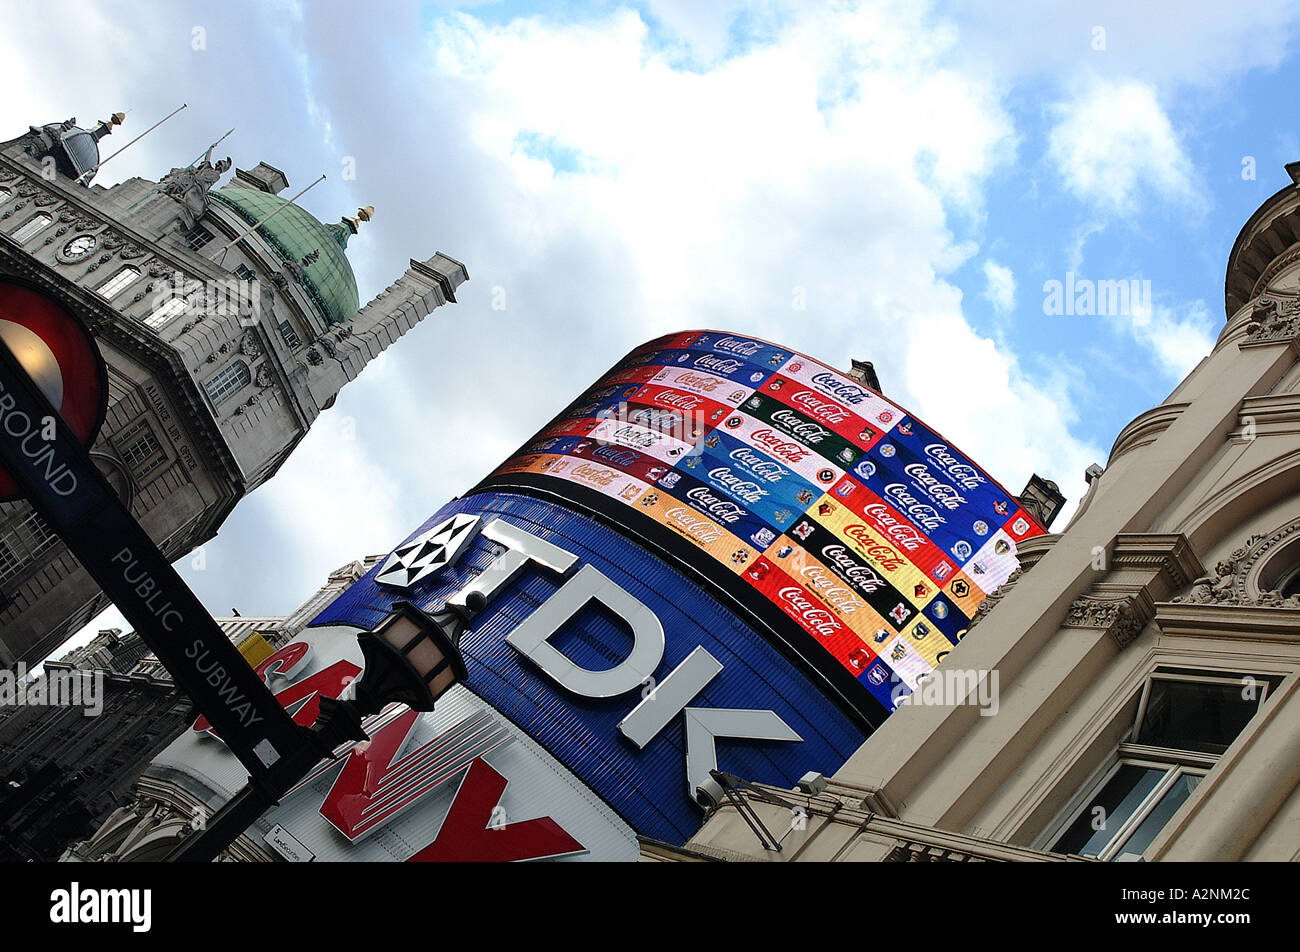 neon signs at picadilly circus - Stock Image